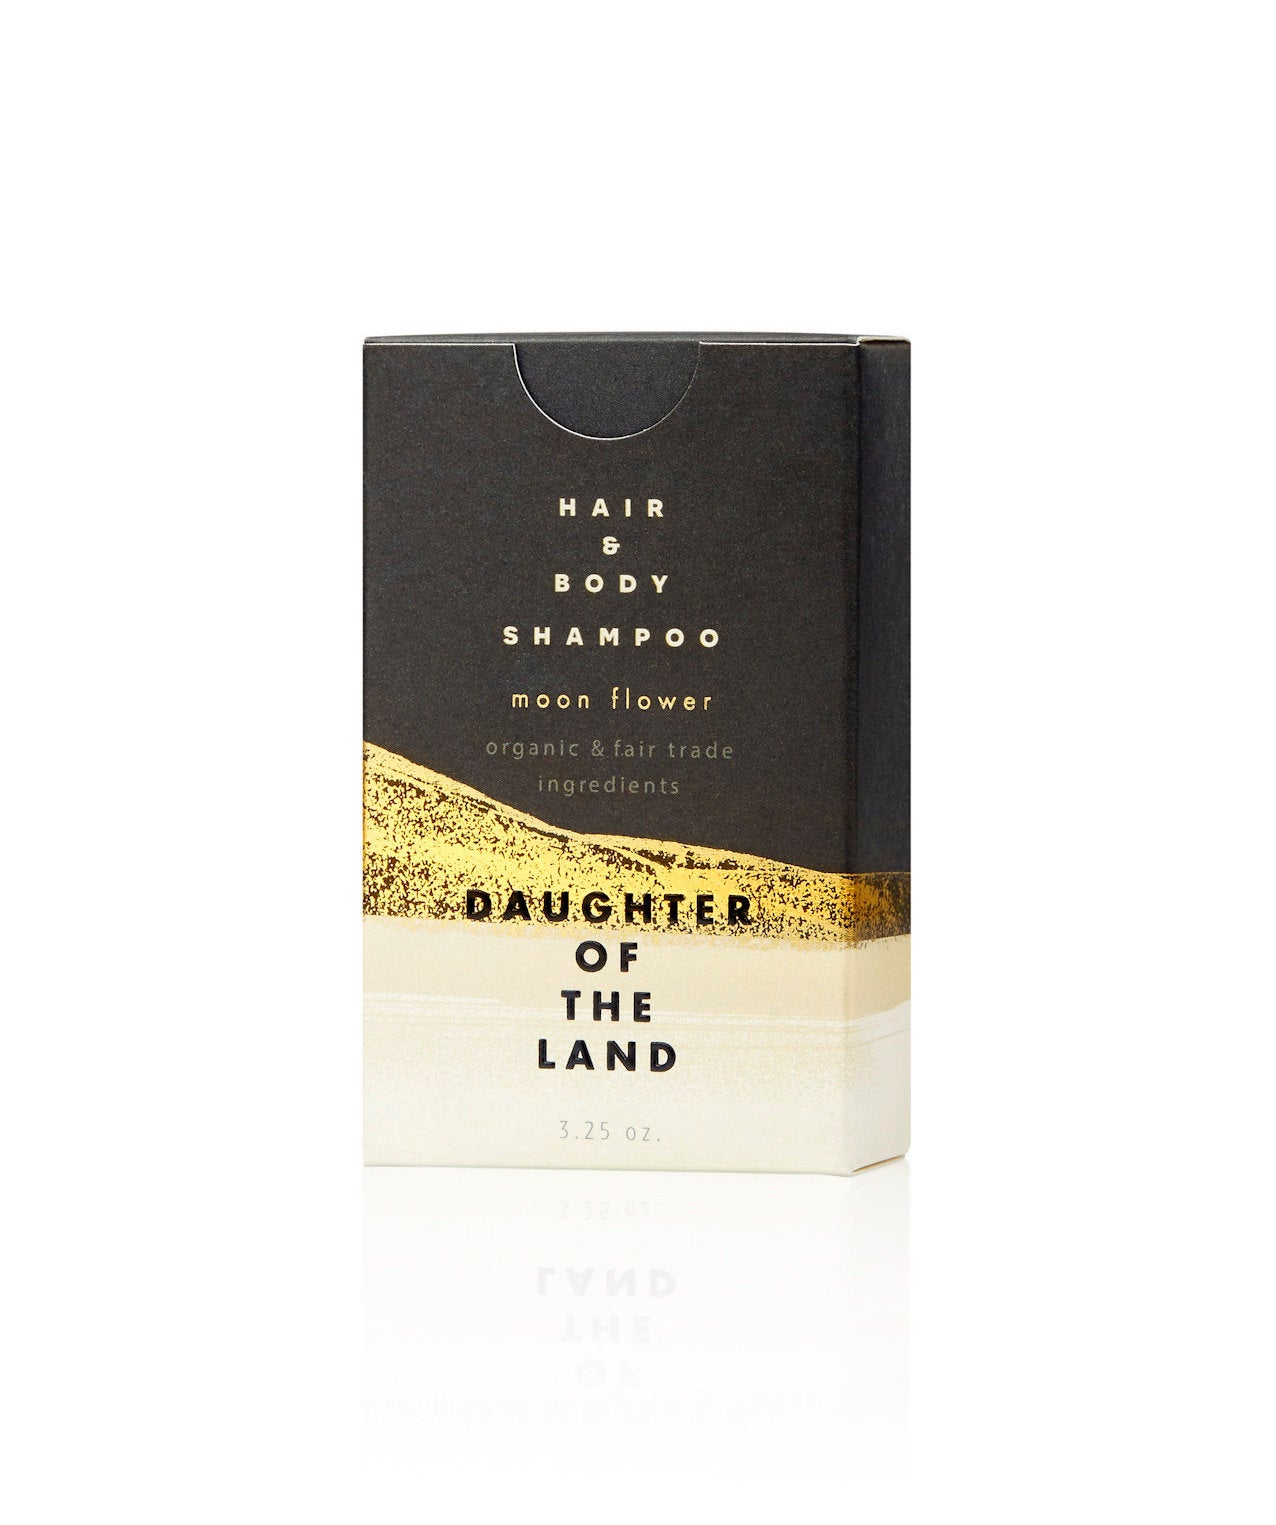 black and gold box that says shampoo bar on the front